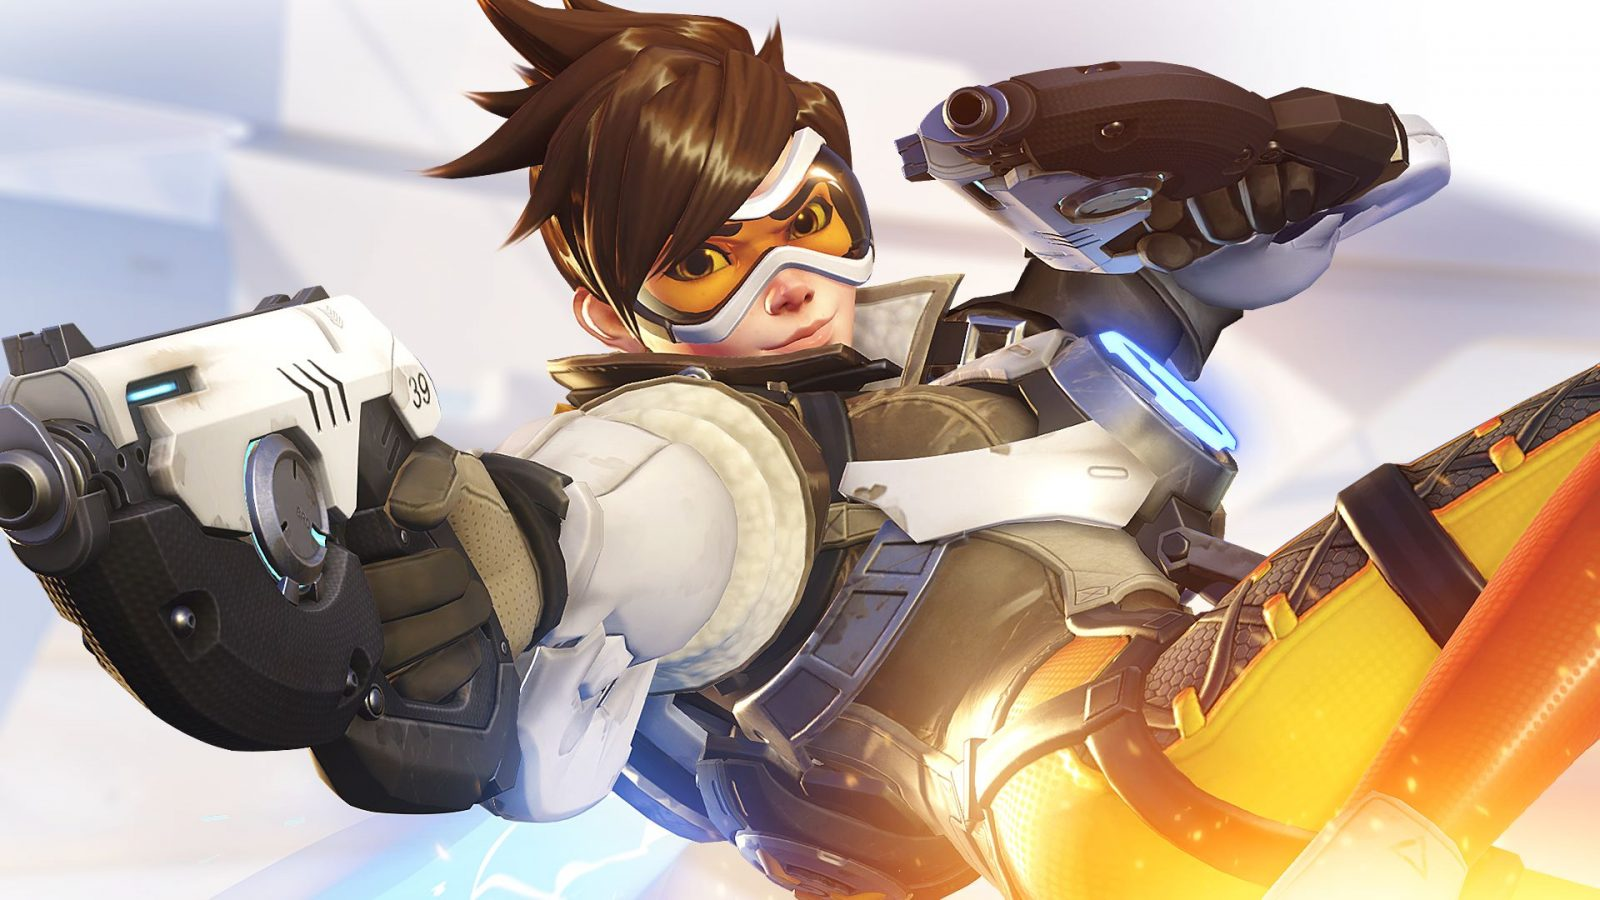 Overwatch, the Overwatch League, and the Feasibility of the 2/2/2 Role Lock